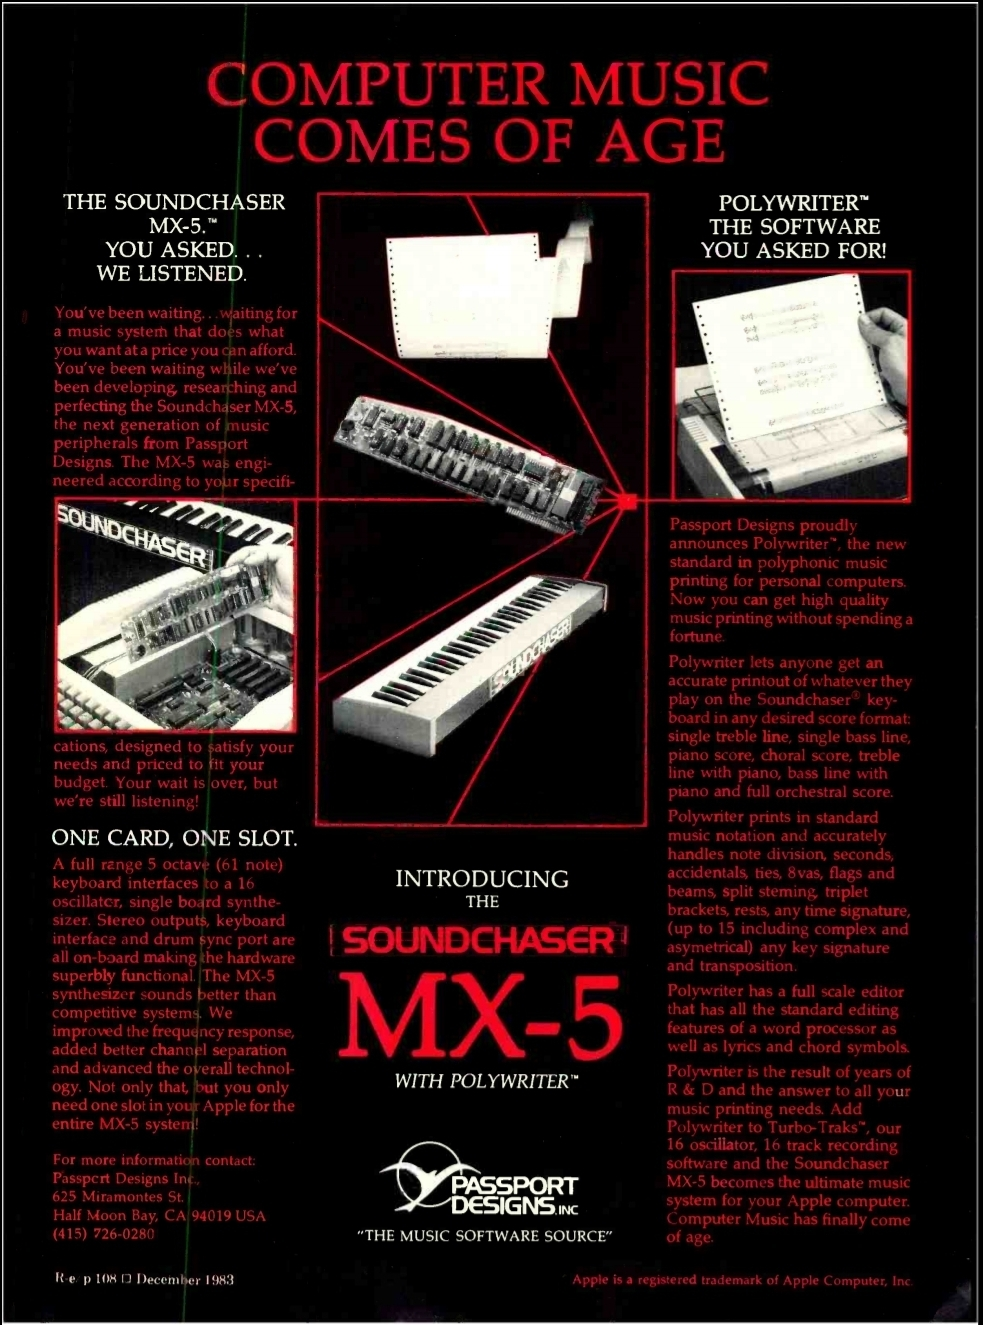 A print ad for the passport designs MX-5, the successor to the original soundchaser.